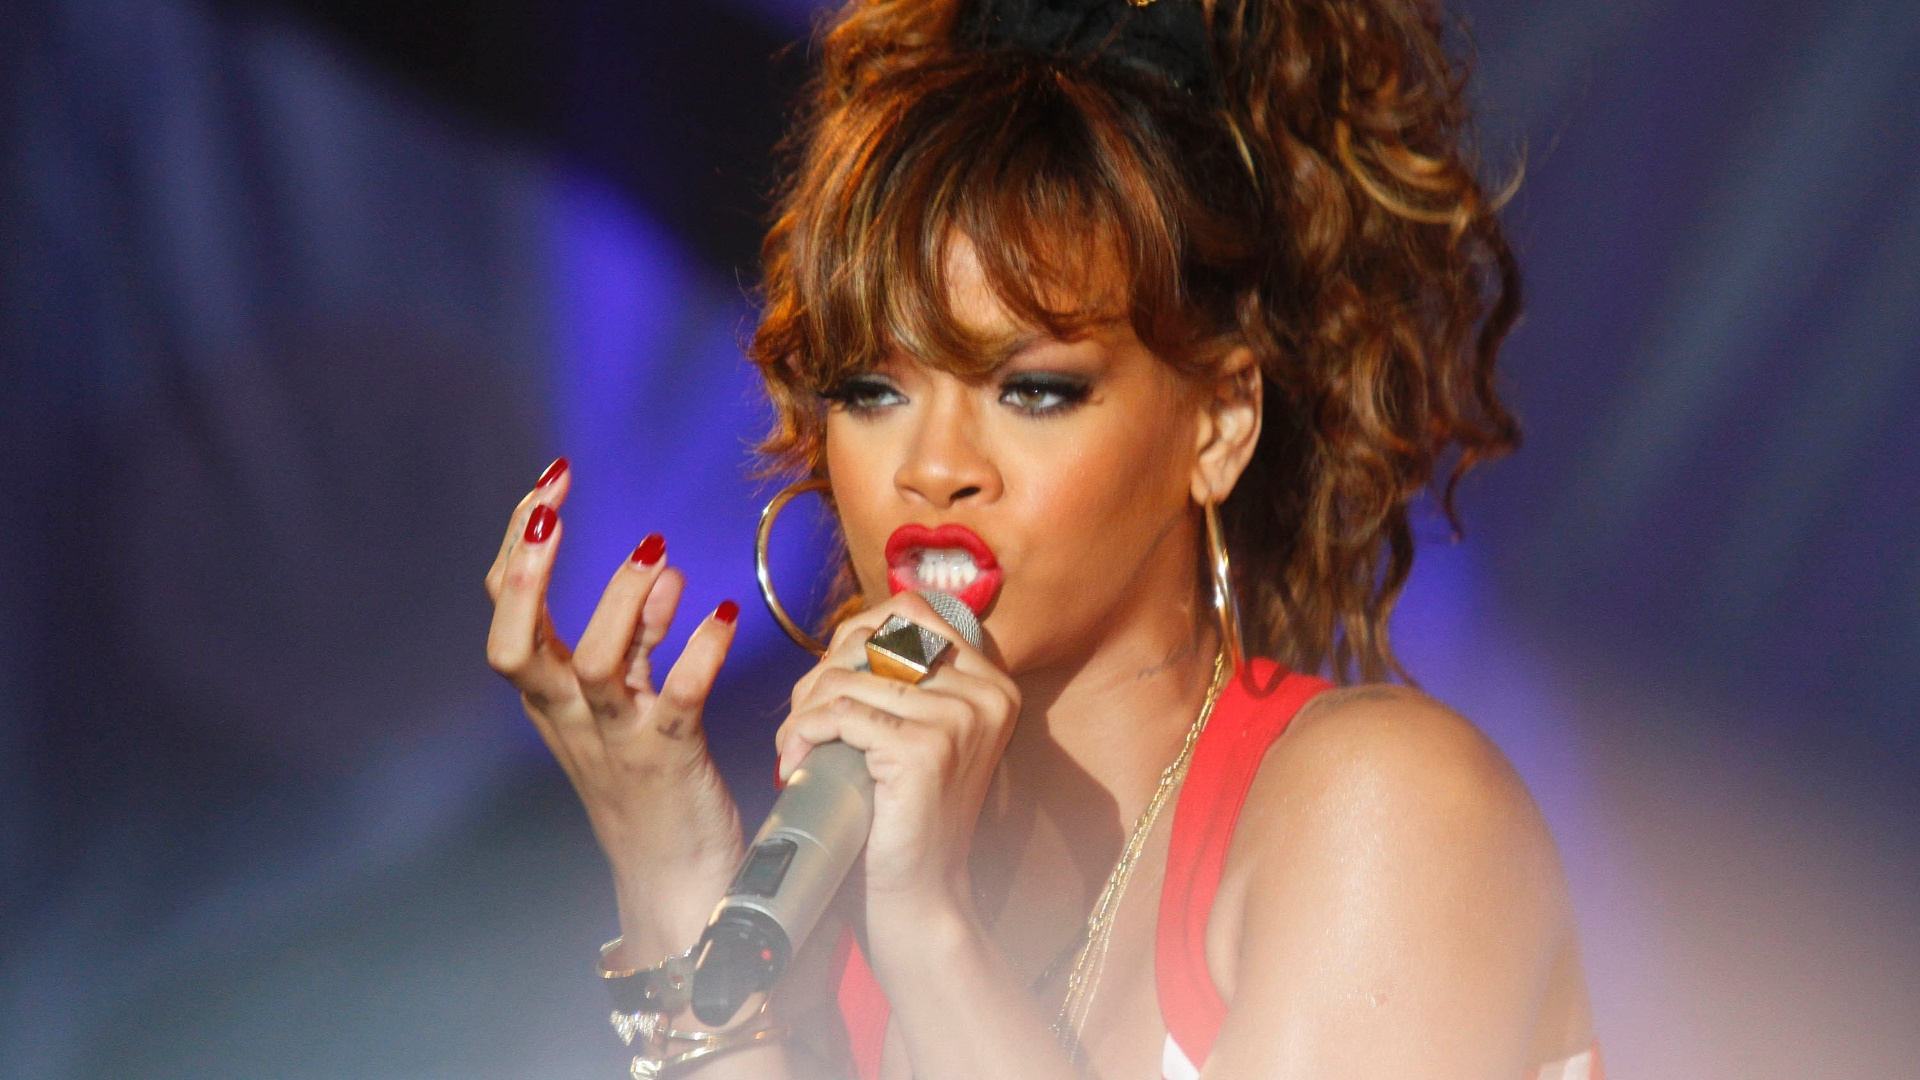 Rihanna se apresenta na primeira noite do Rock In Rio 2011 (23/09/2011)